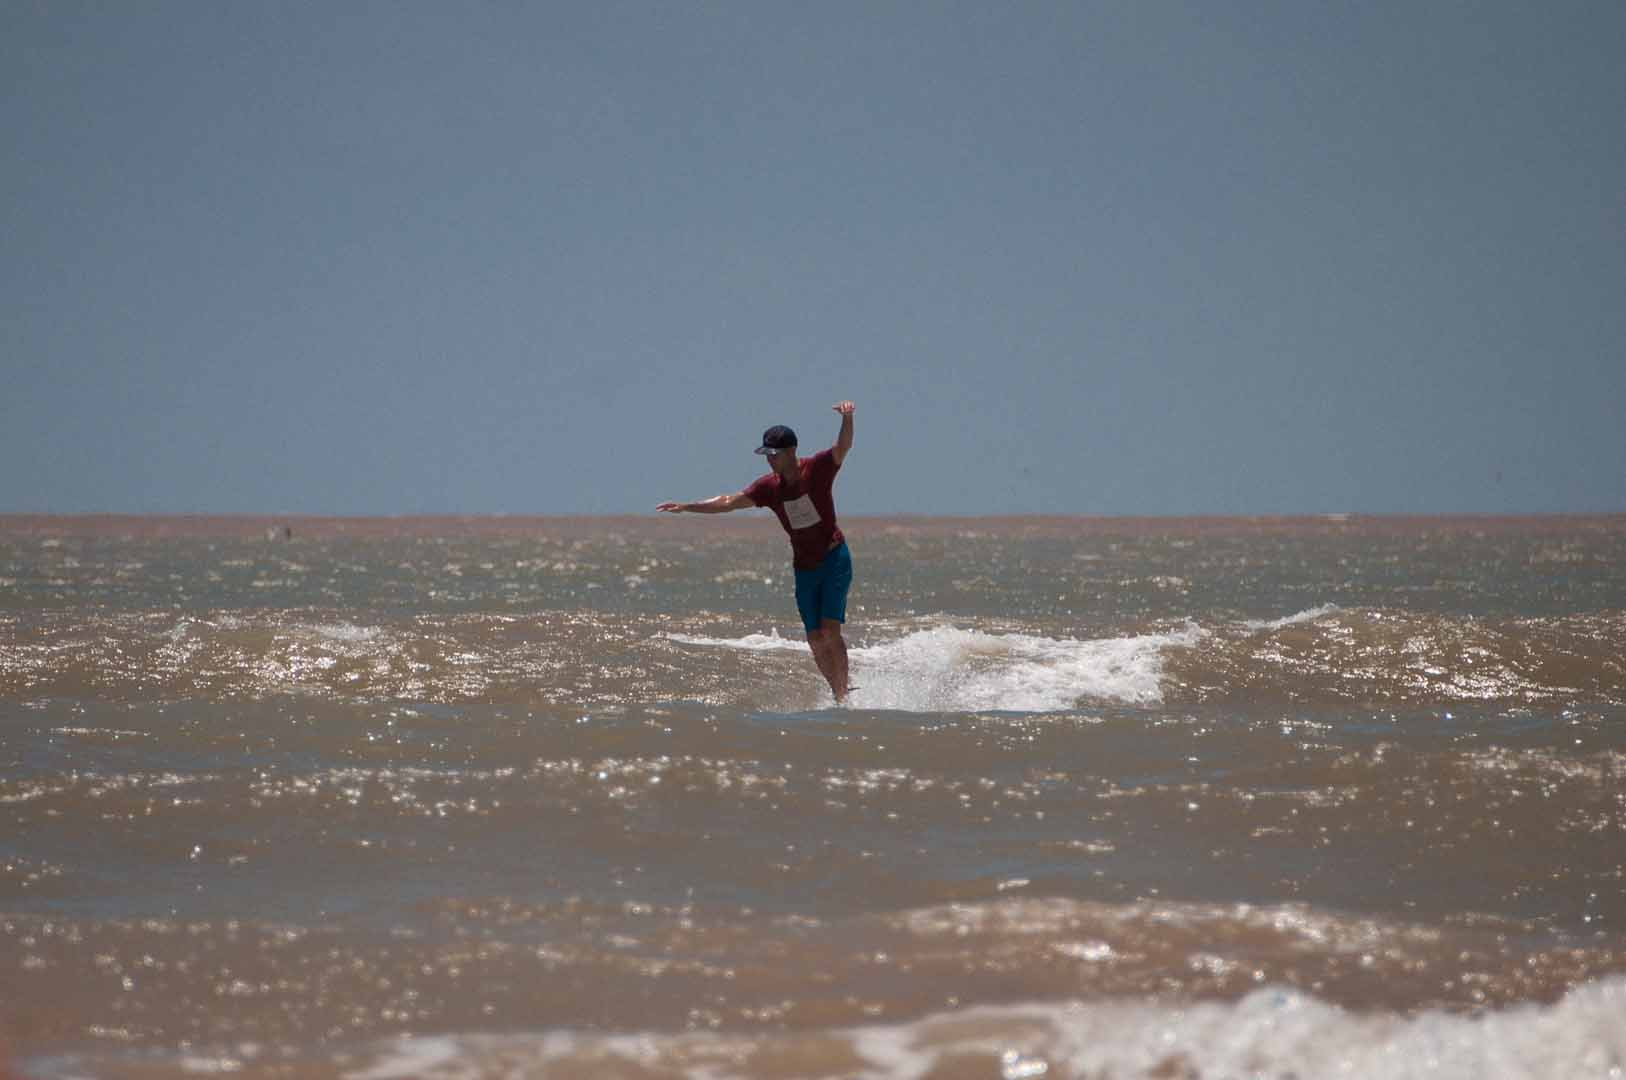 SurfsideLateJune_20150627_177